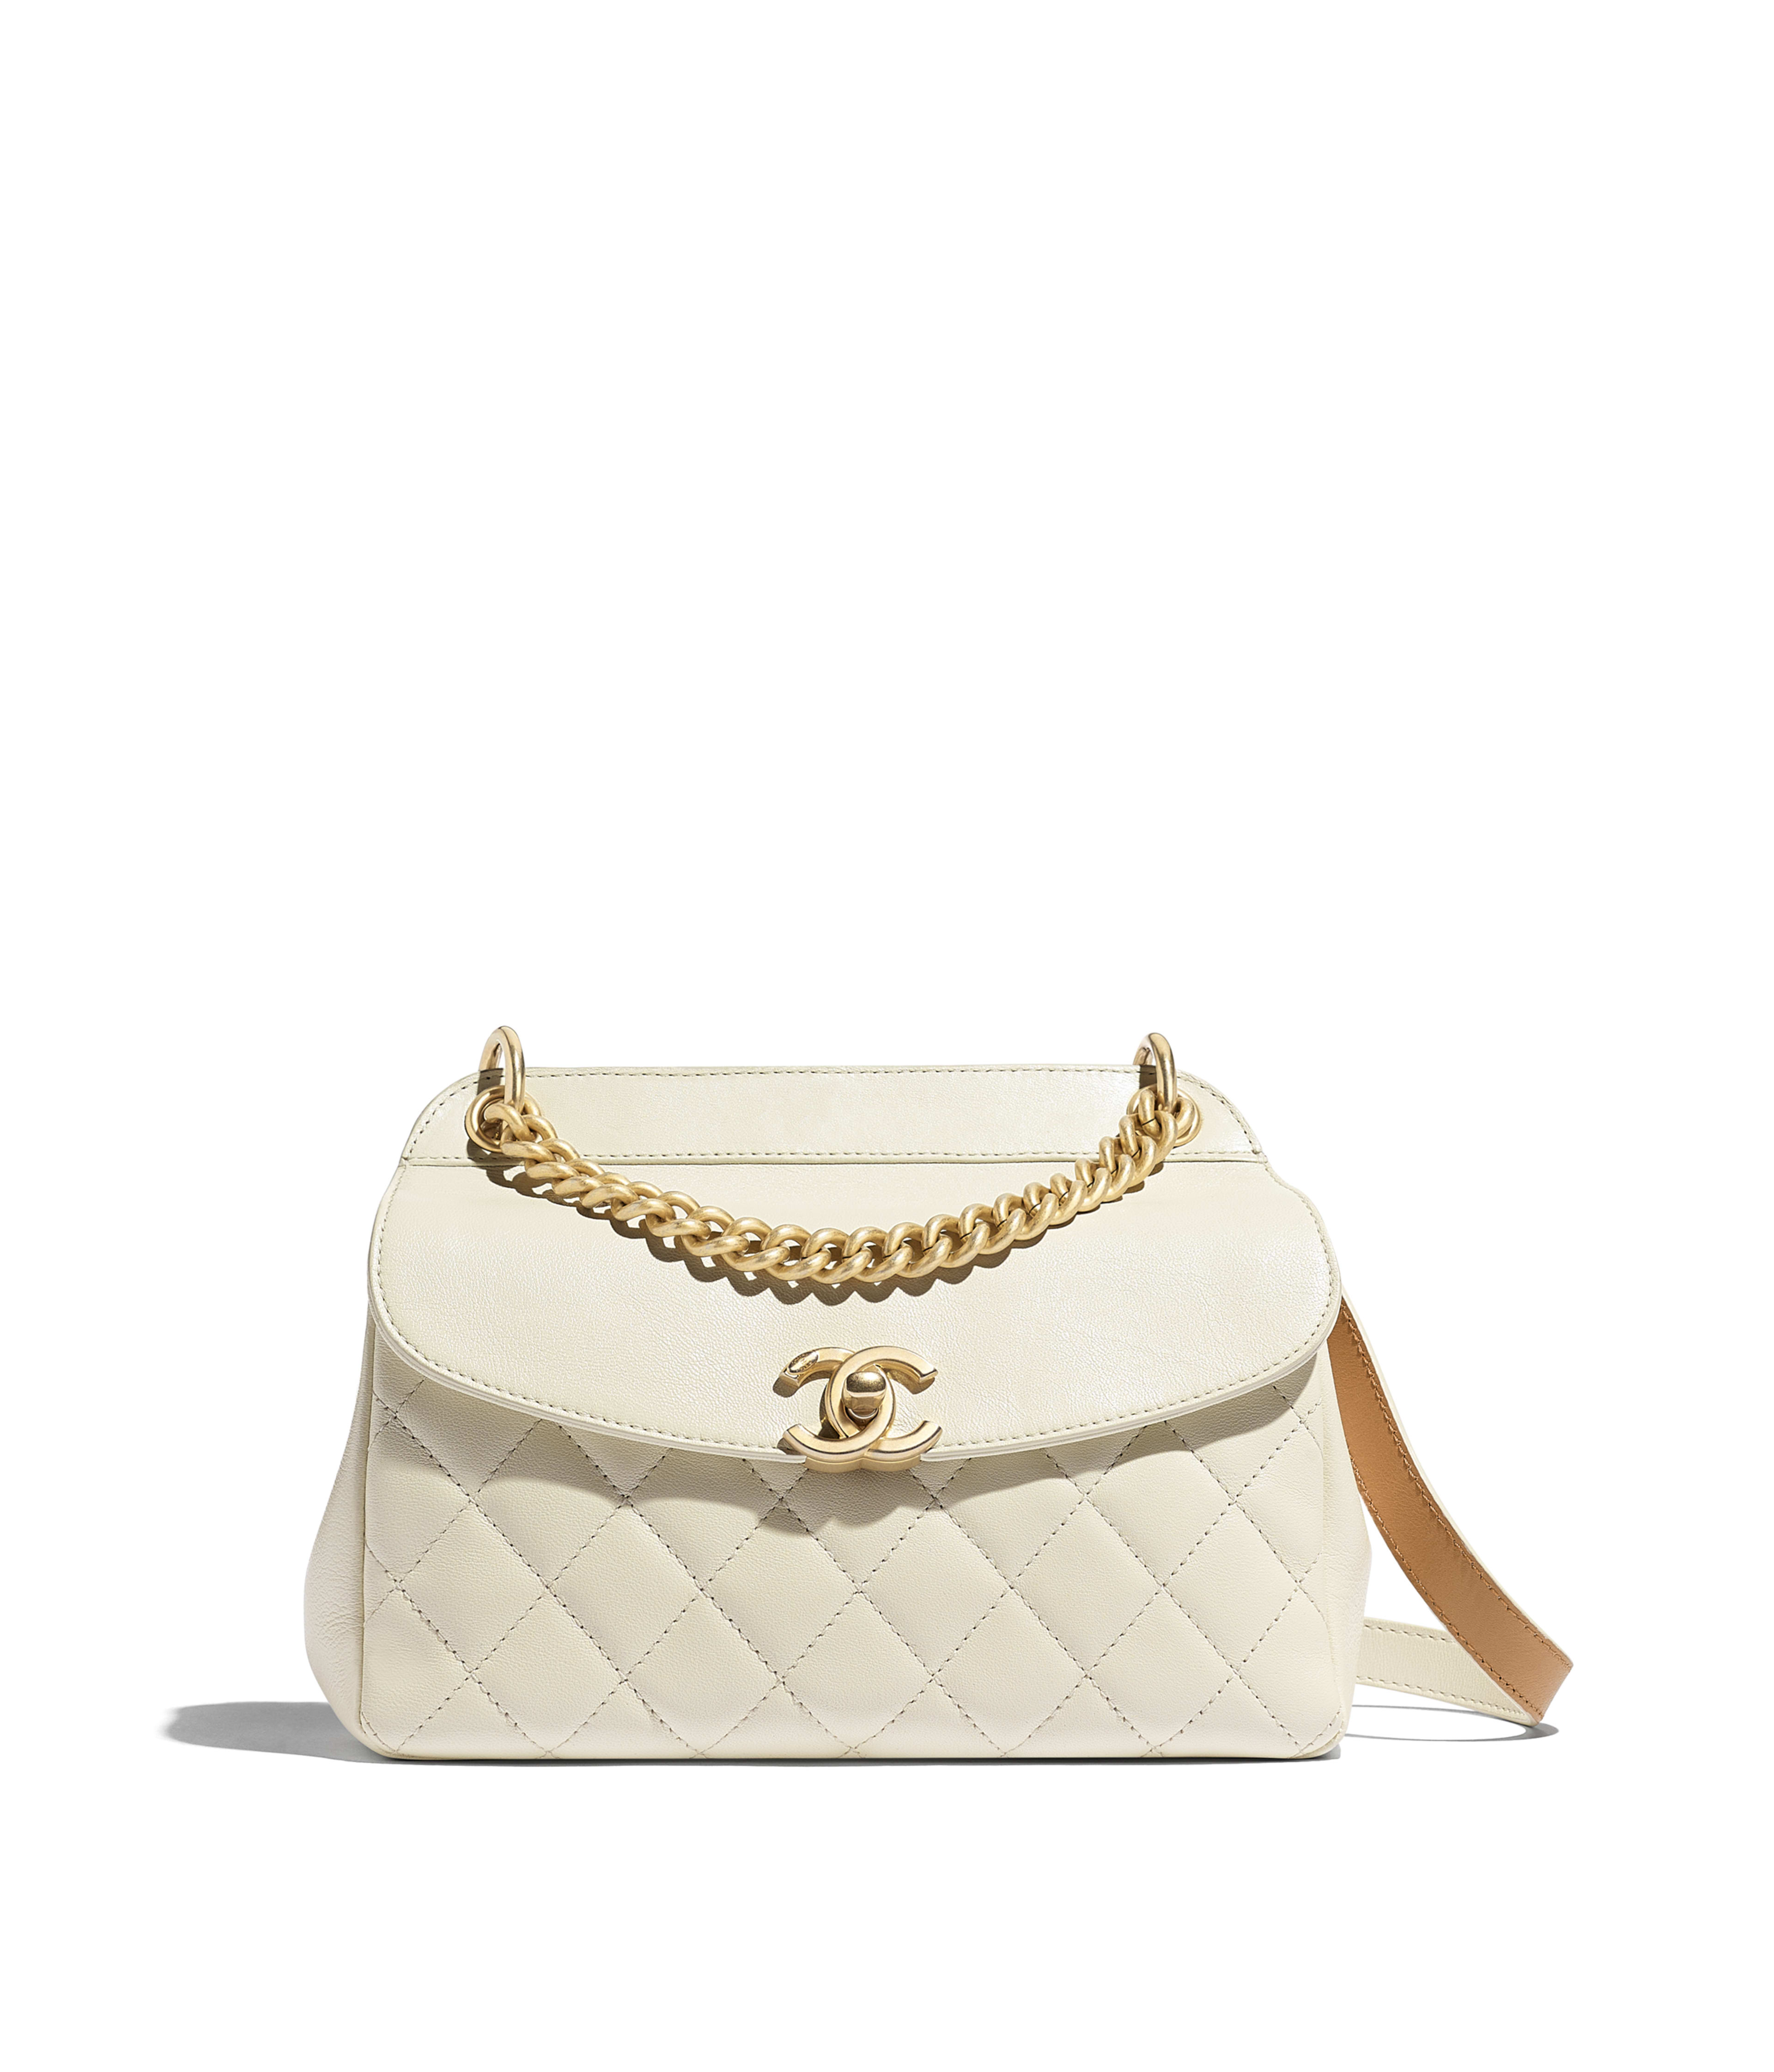 b39f575055258f Flap Bag Lambskin, Calfskin & Gold-Tone Metal, Ivory Ref. AS0416B0014210800